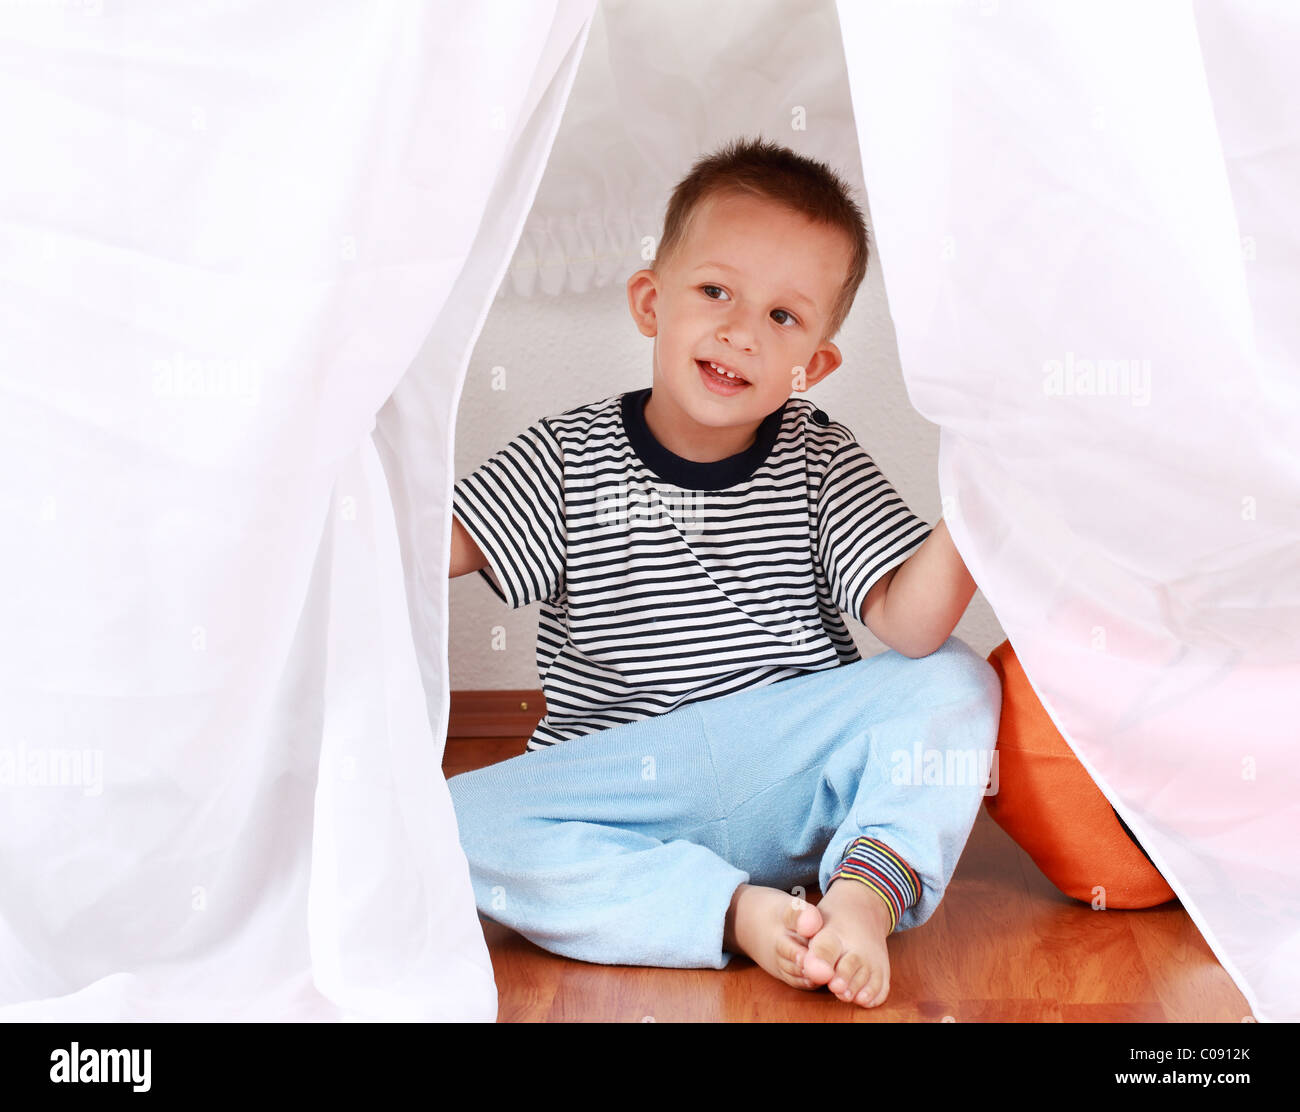 Adorable boy playing hide-and-seek at home - Stock Image